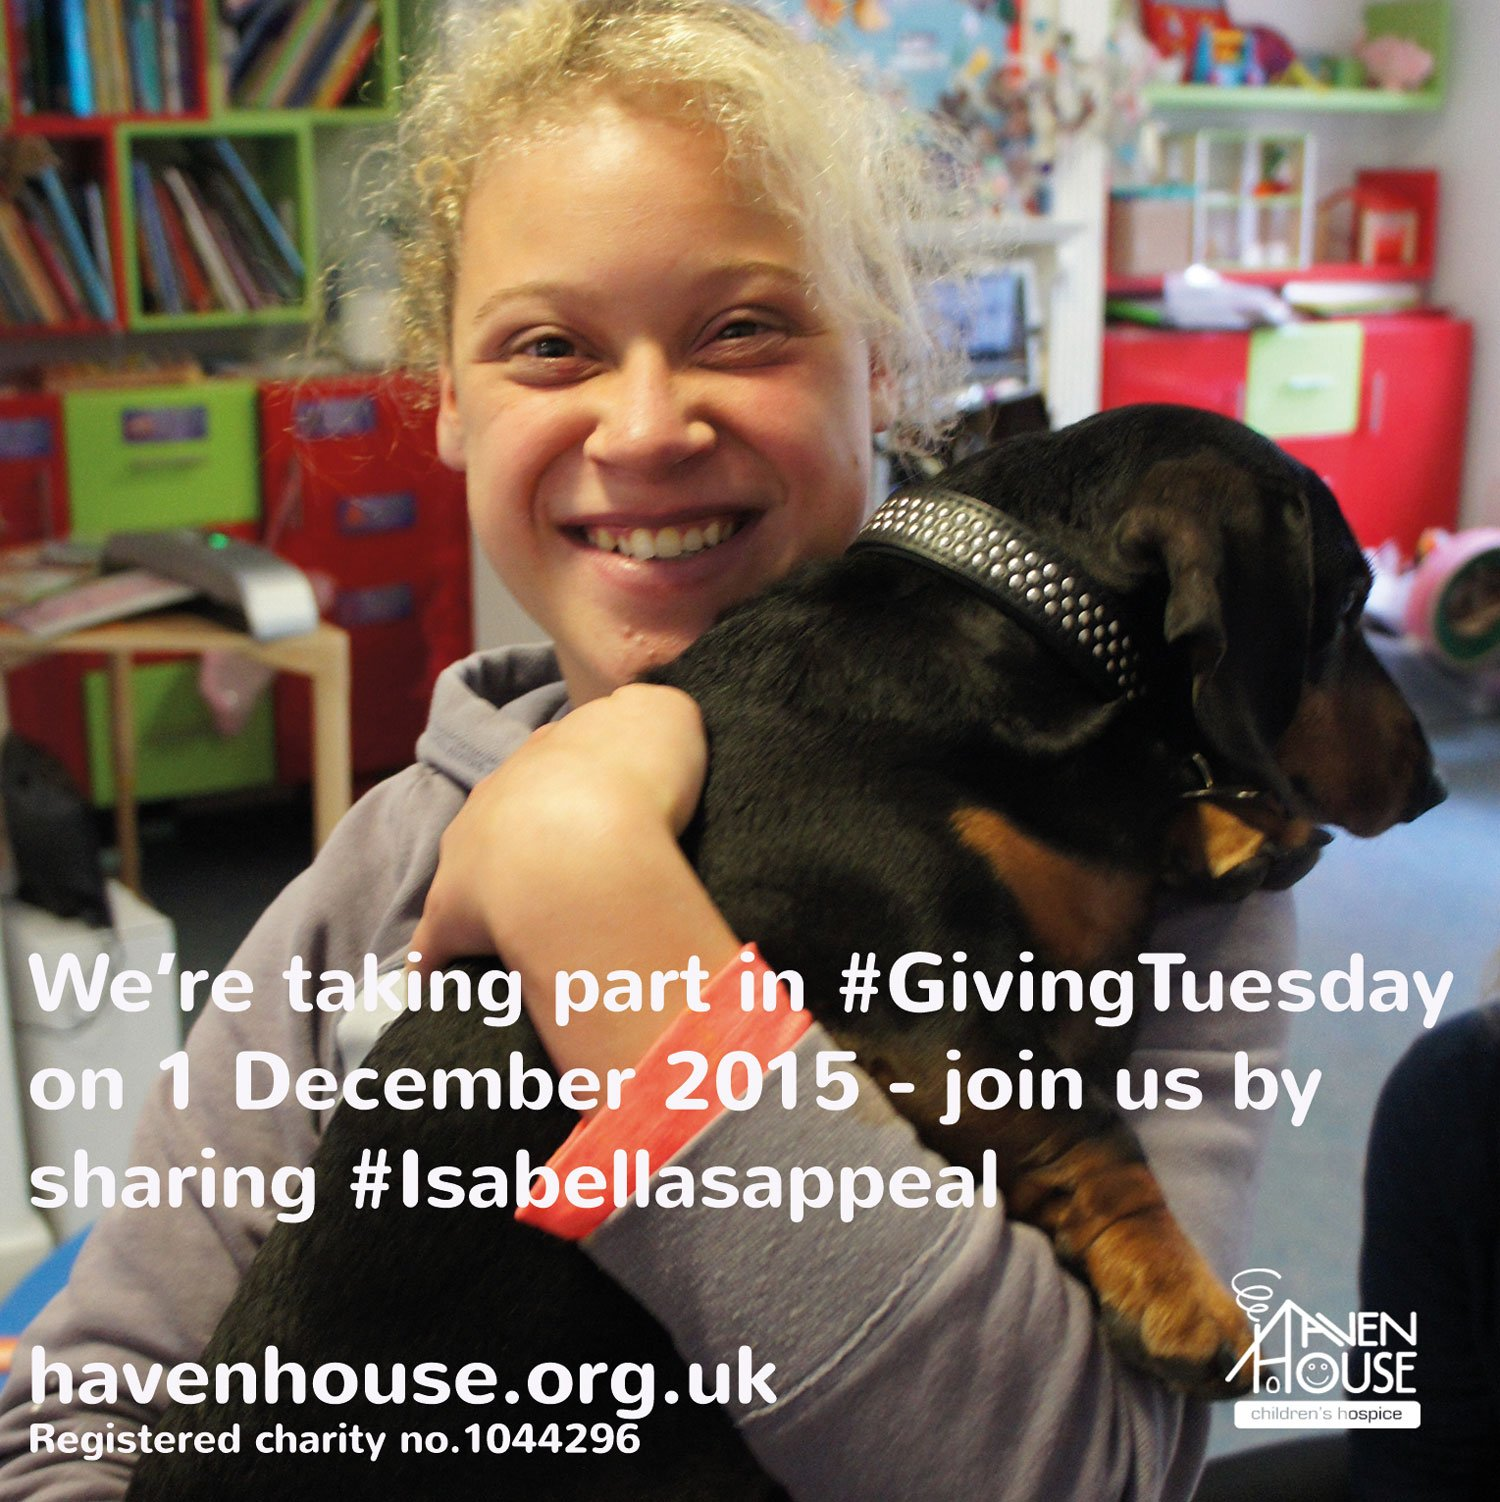 RT @HavenHouseCH: Tomorrow is #GivingTuesday, a national day of giving. Whatever you do, please help and share our appeal. Thank you. https…